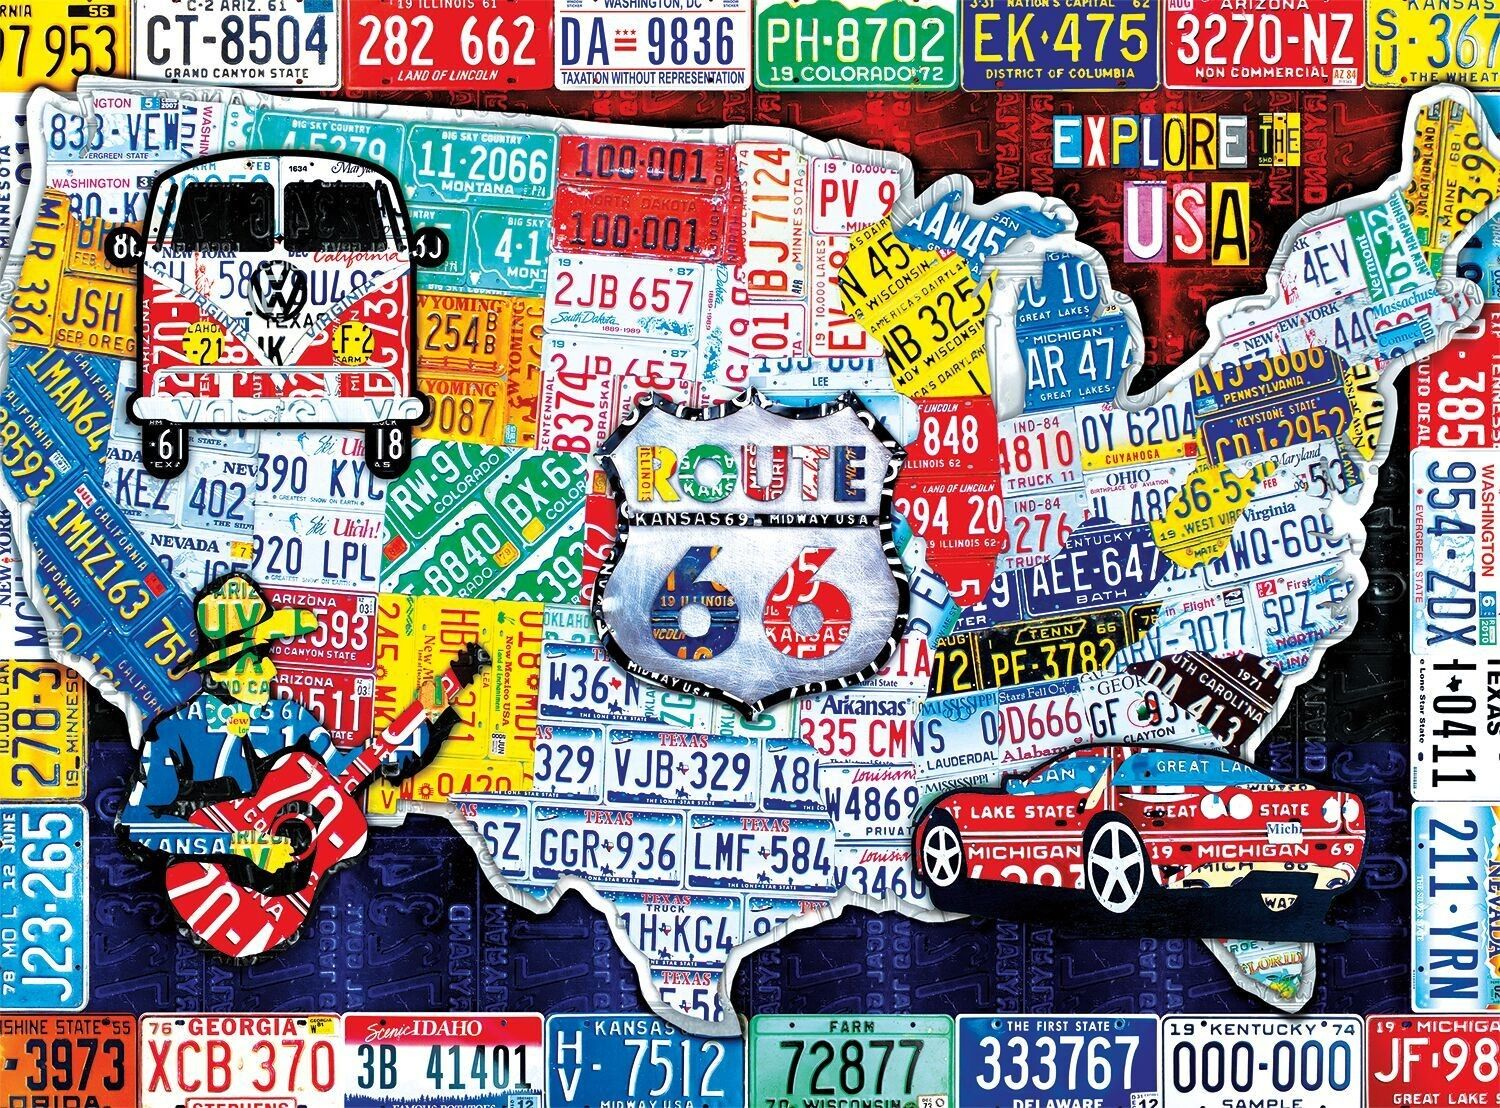 Take An Exciting Trip Across The United States With This Puzzling - Us-map-made-out-of-license-plates